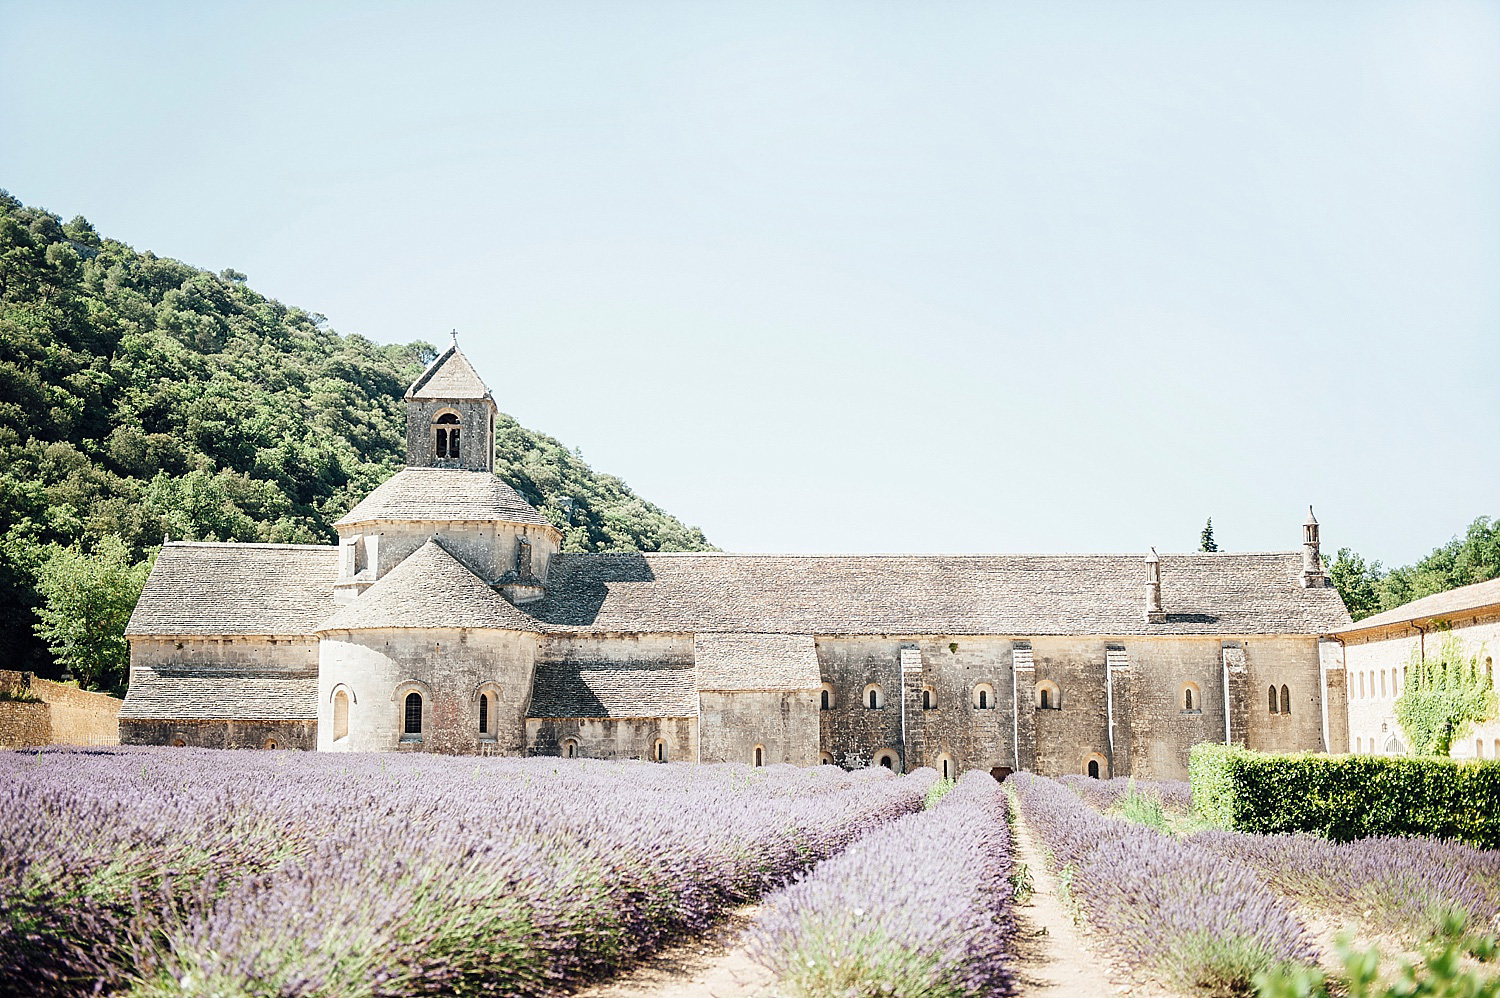 Katie_Mitchell_Photography_Provence_Travel_Photography_Gordes_01.jpg